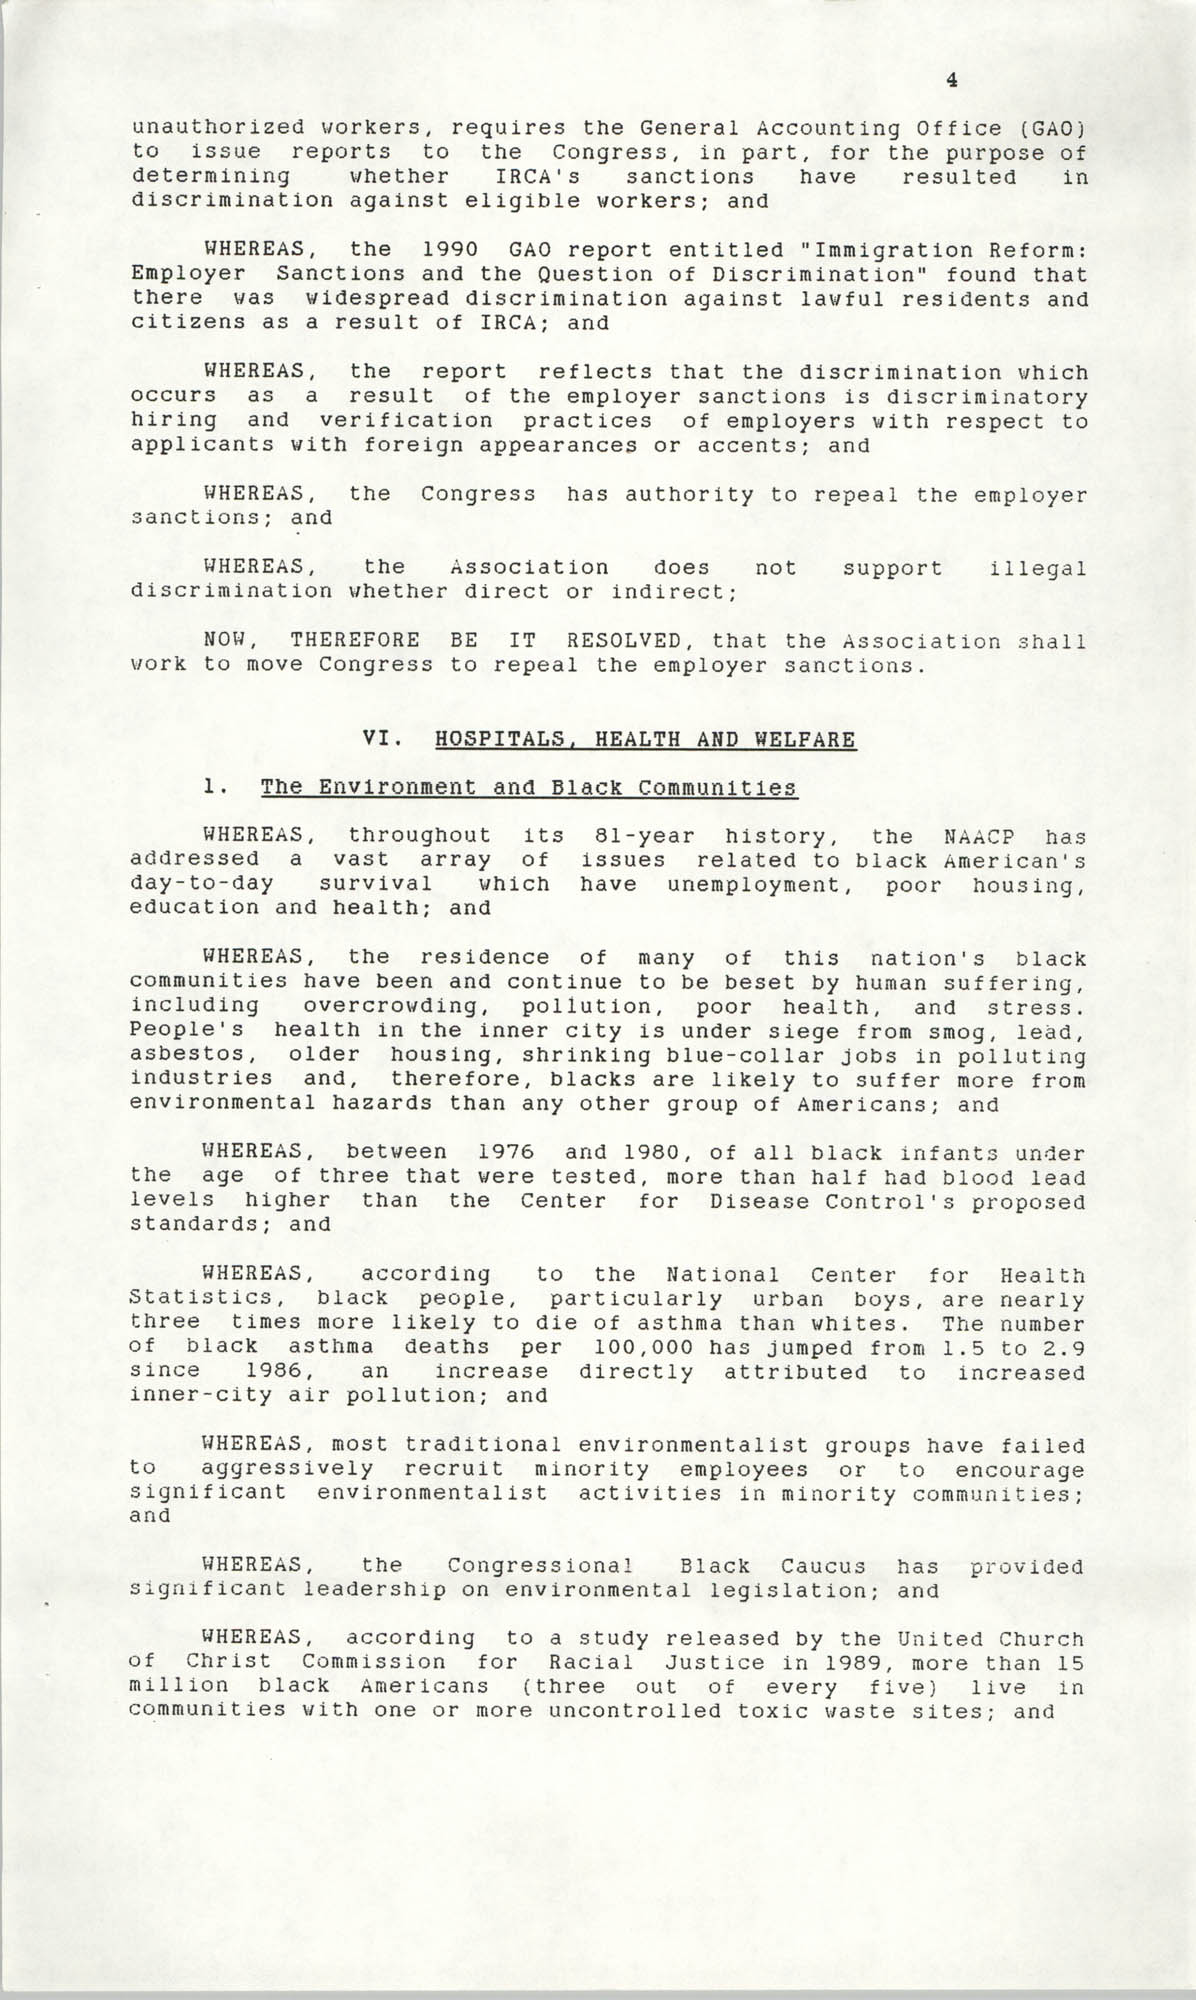 Resolutions Submitted Under Article X, Section 2 of the Constitution of the NAACP, 1990, Page 4